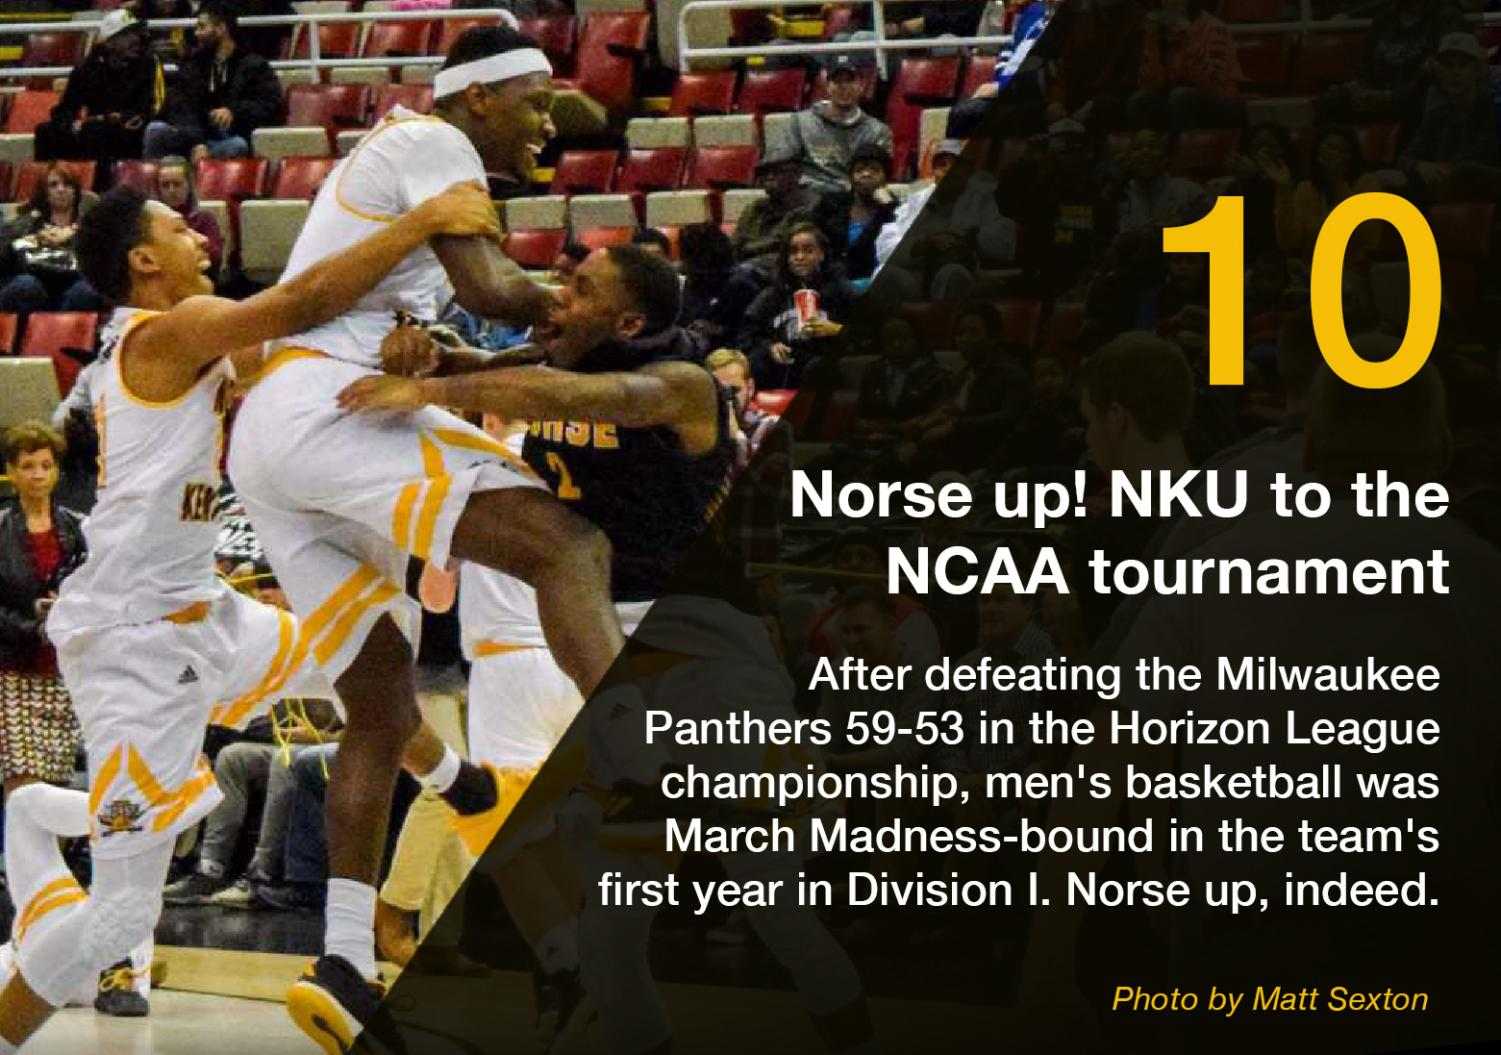 After+defeating+the+Milwaukee+Panthers+59-53+in+the+Horizon+League+championship%2C+men%27s+basketball+was+March+Madness-bound+in+the+team%27s+first+year+in+Division+I.+Norse+up%2C+indeed.